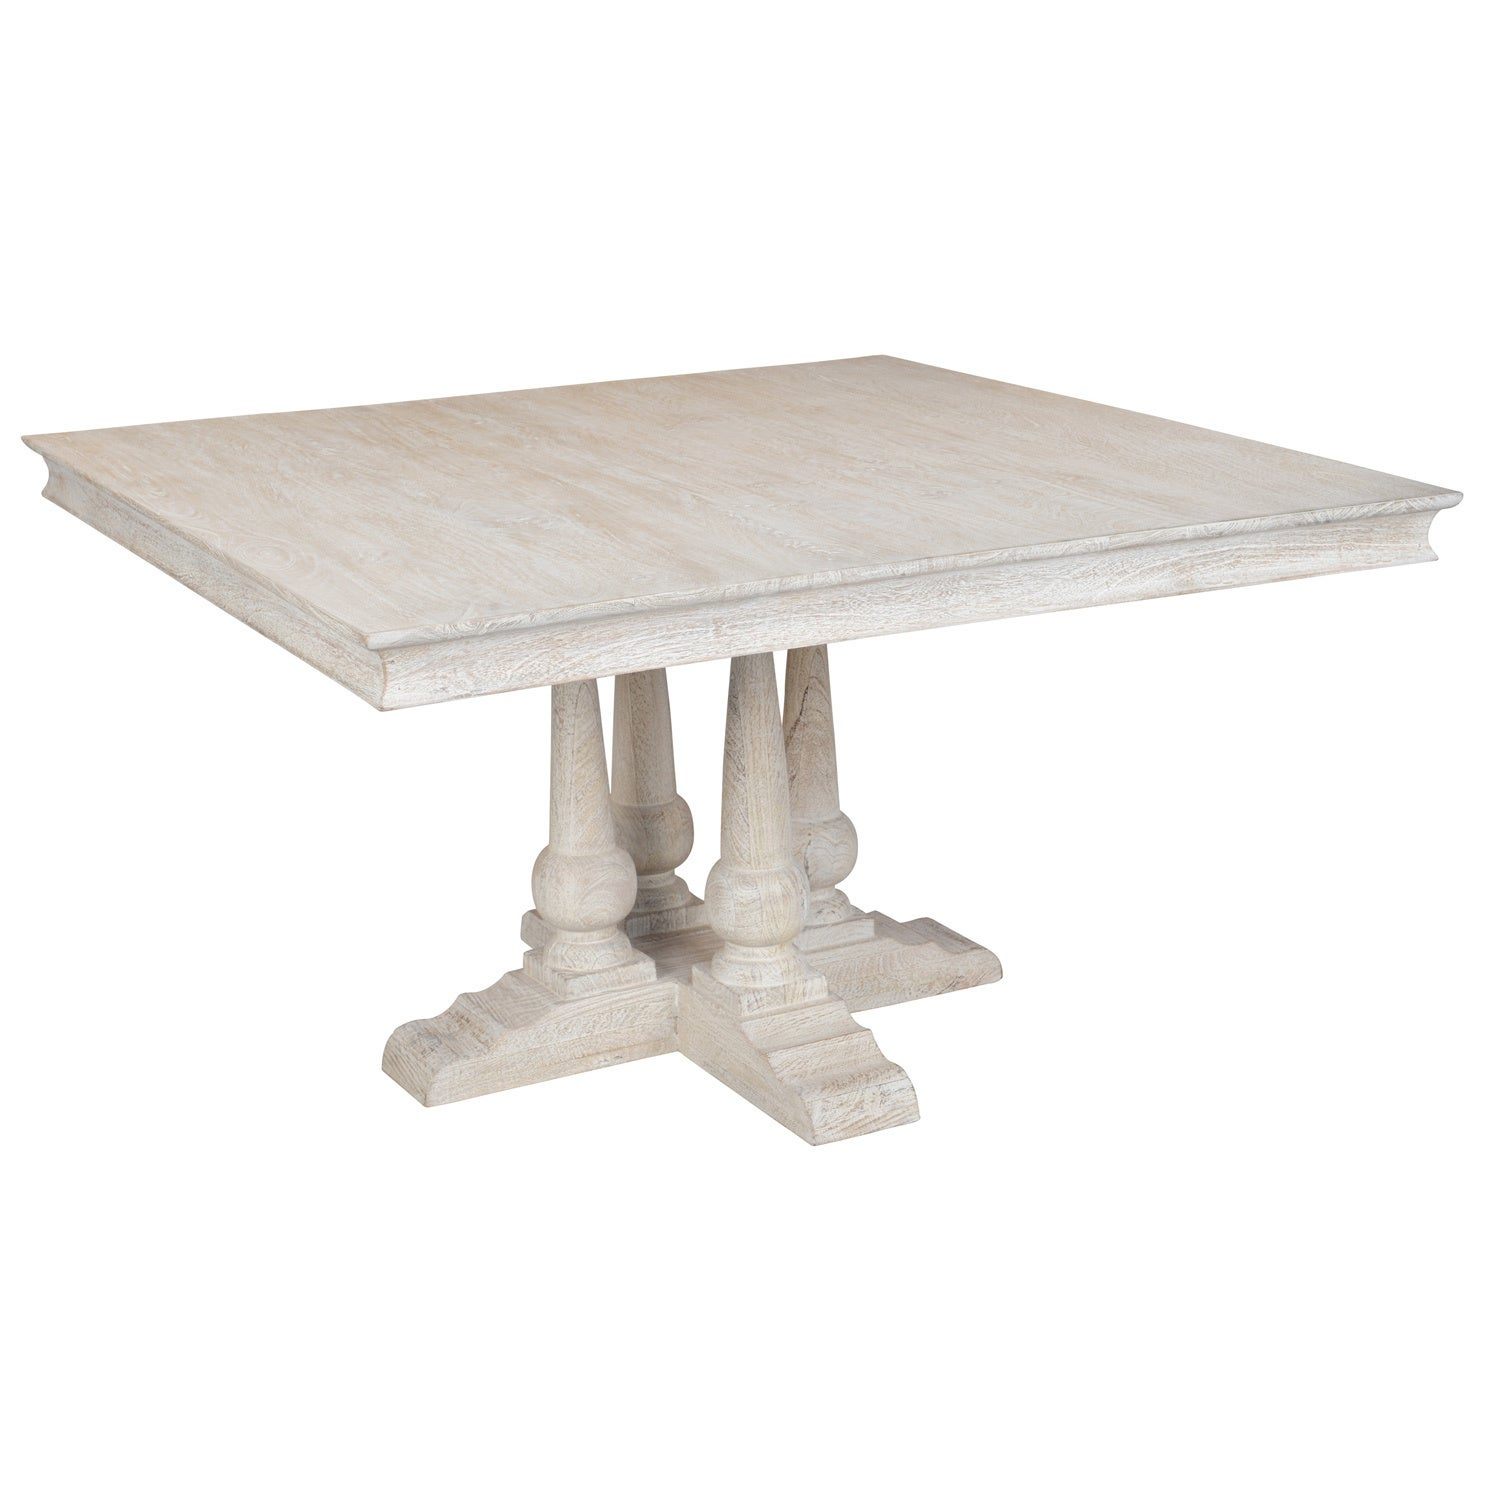 Shop norman solid wood 54 inches square dining table by kosas home norman solid wood 54 inches square dining table by kosas home antique white watchthetrailerfo